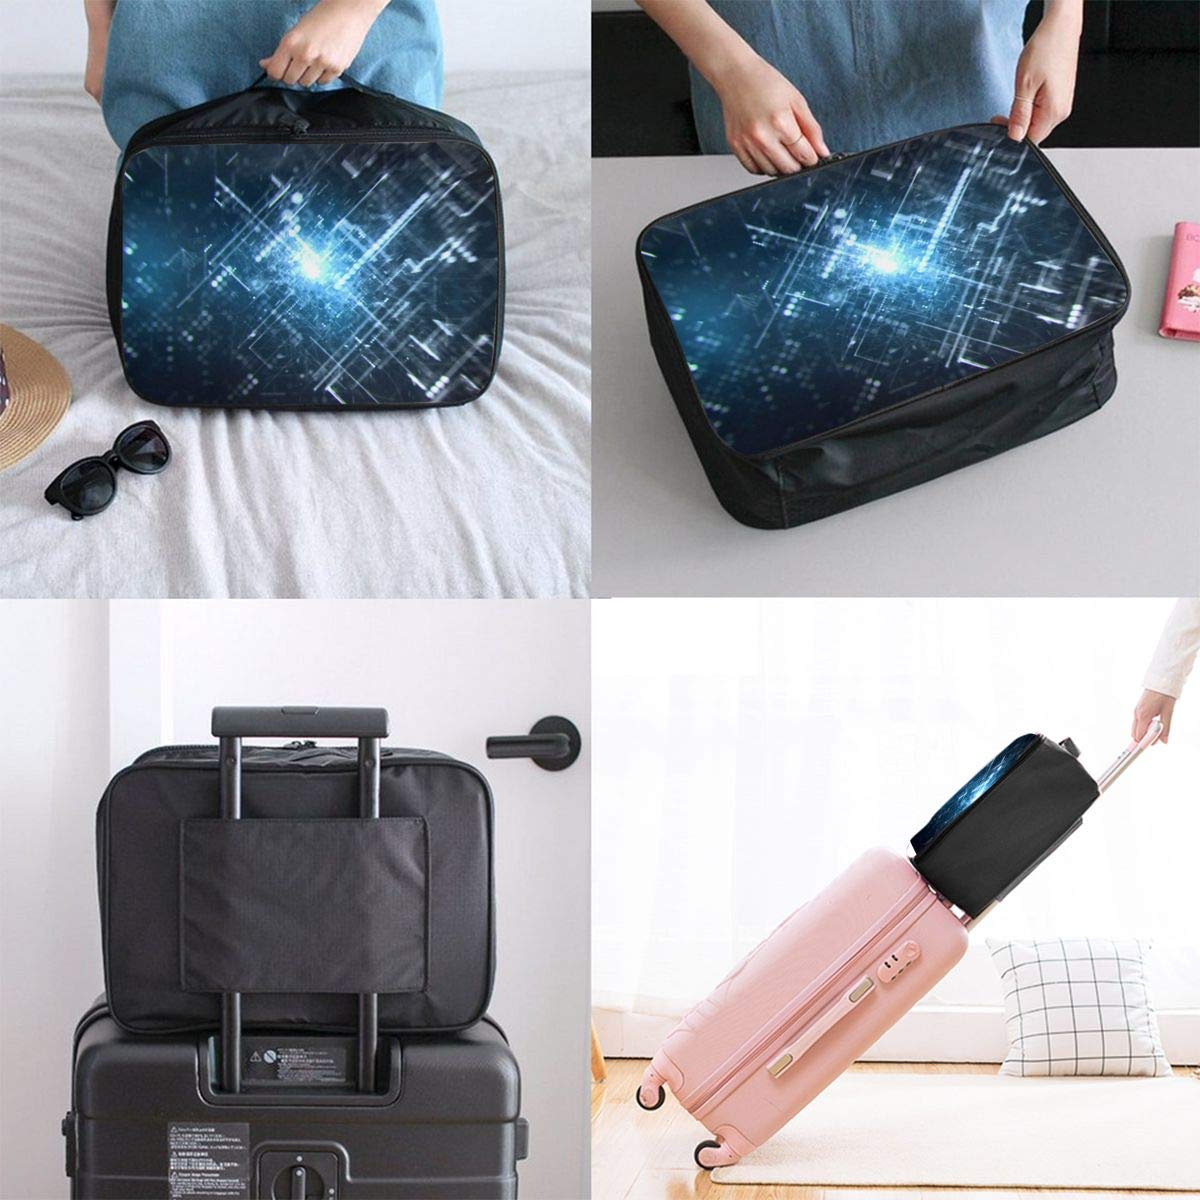 Travel Luggage Duffle Bag Lightweight Portable Handbag Information Technology Pattern Large Capacity Waterproof Foldable Storage Tote